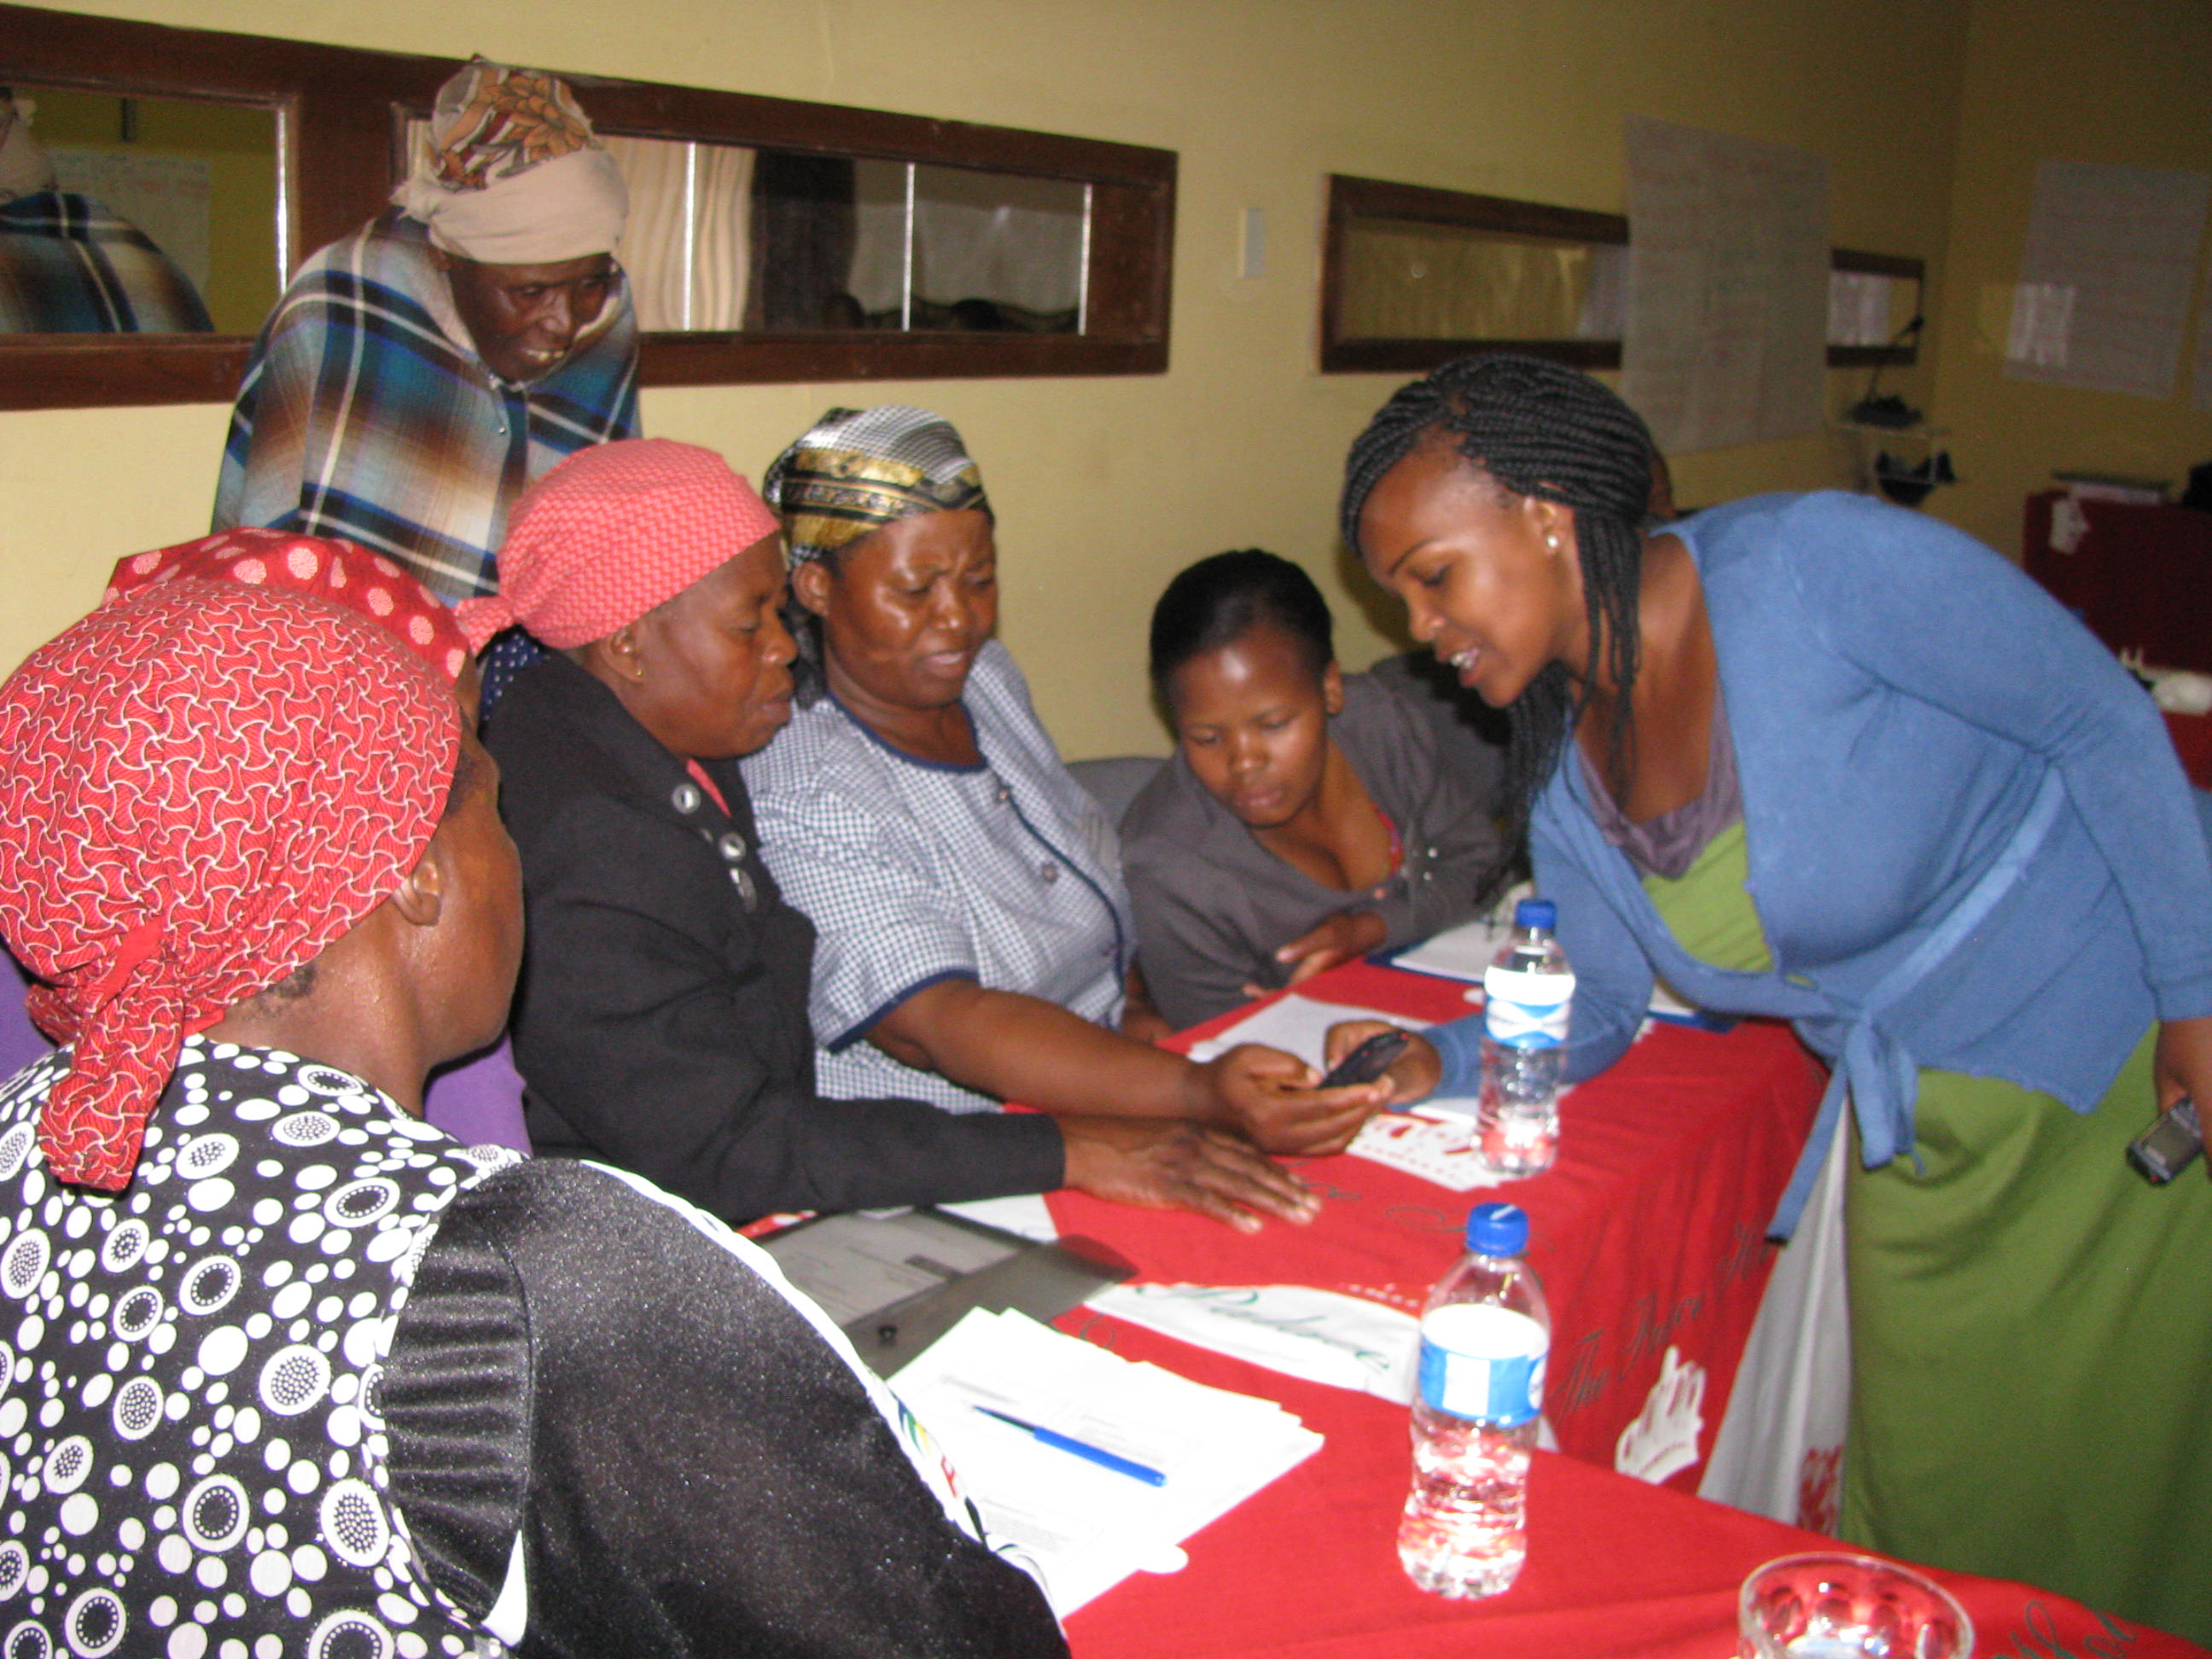 Women sharing communication skills